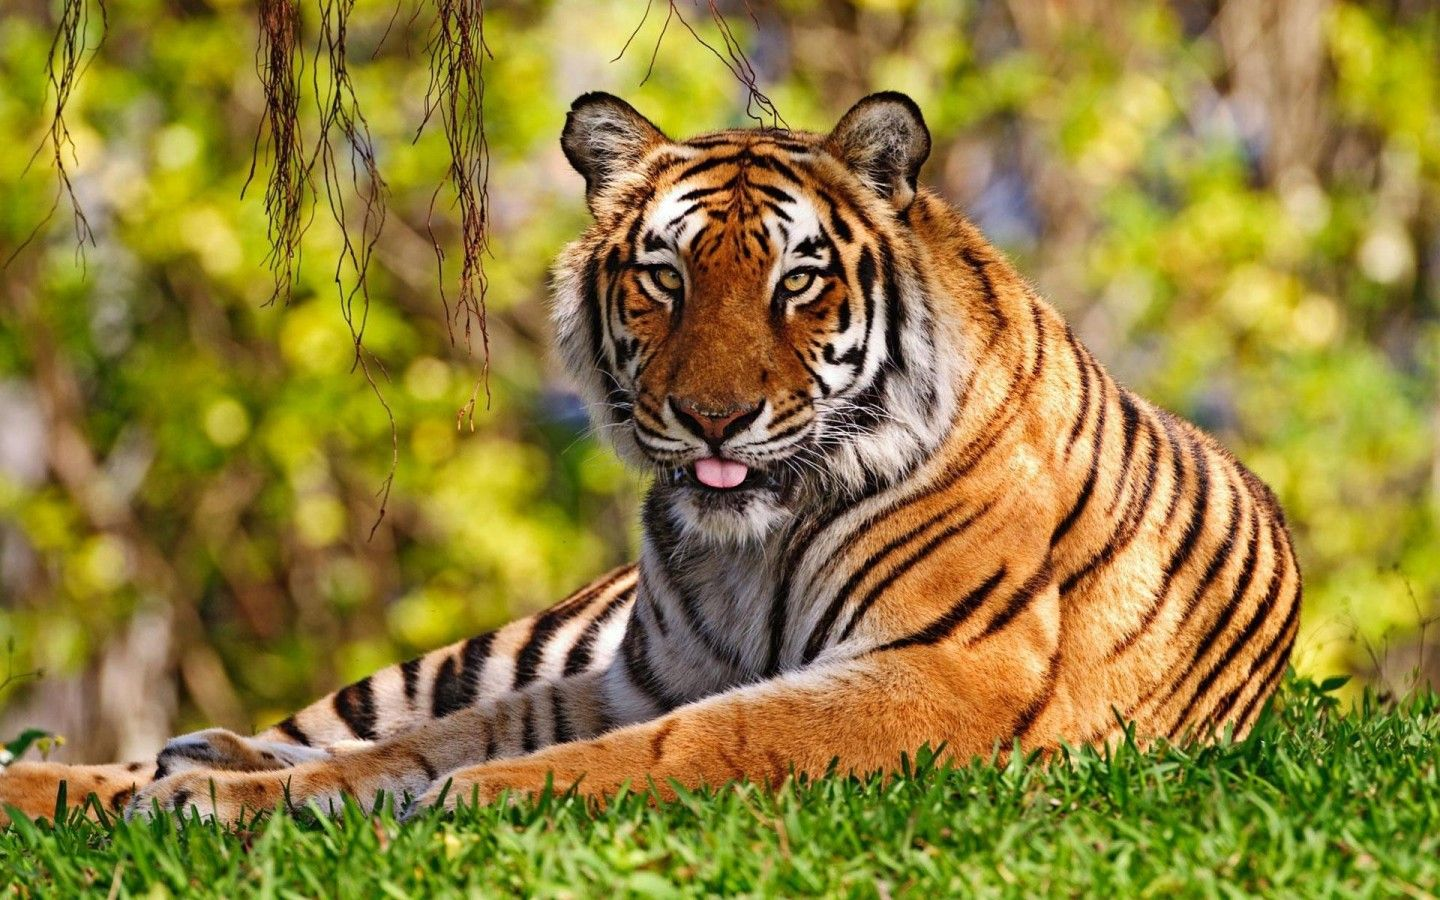 Tiger Images Hd Free Download Tiger Tiger Wallpaper Tiger Pictures Wild Animal Wallpaper